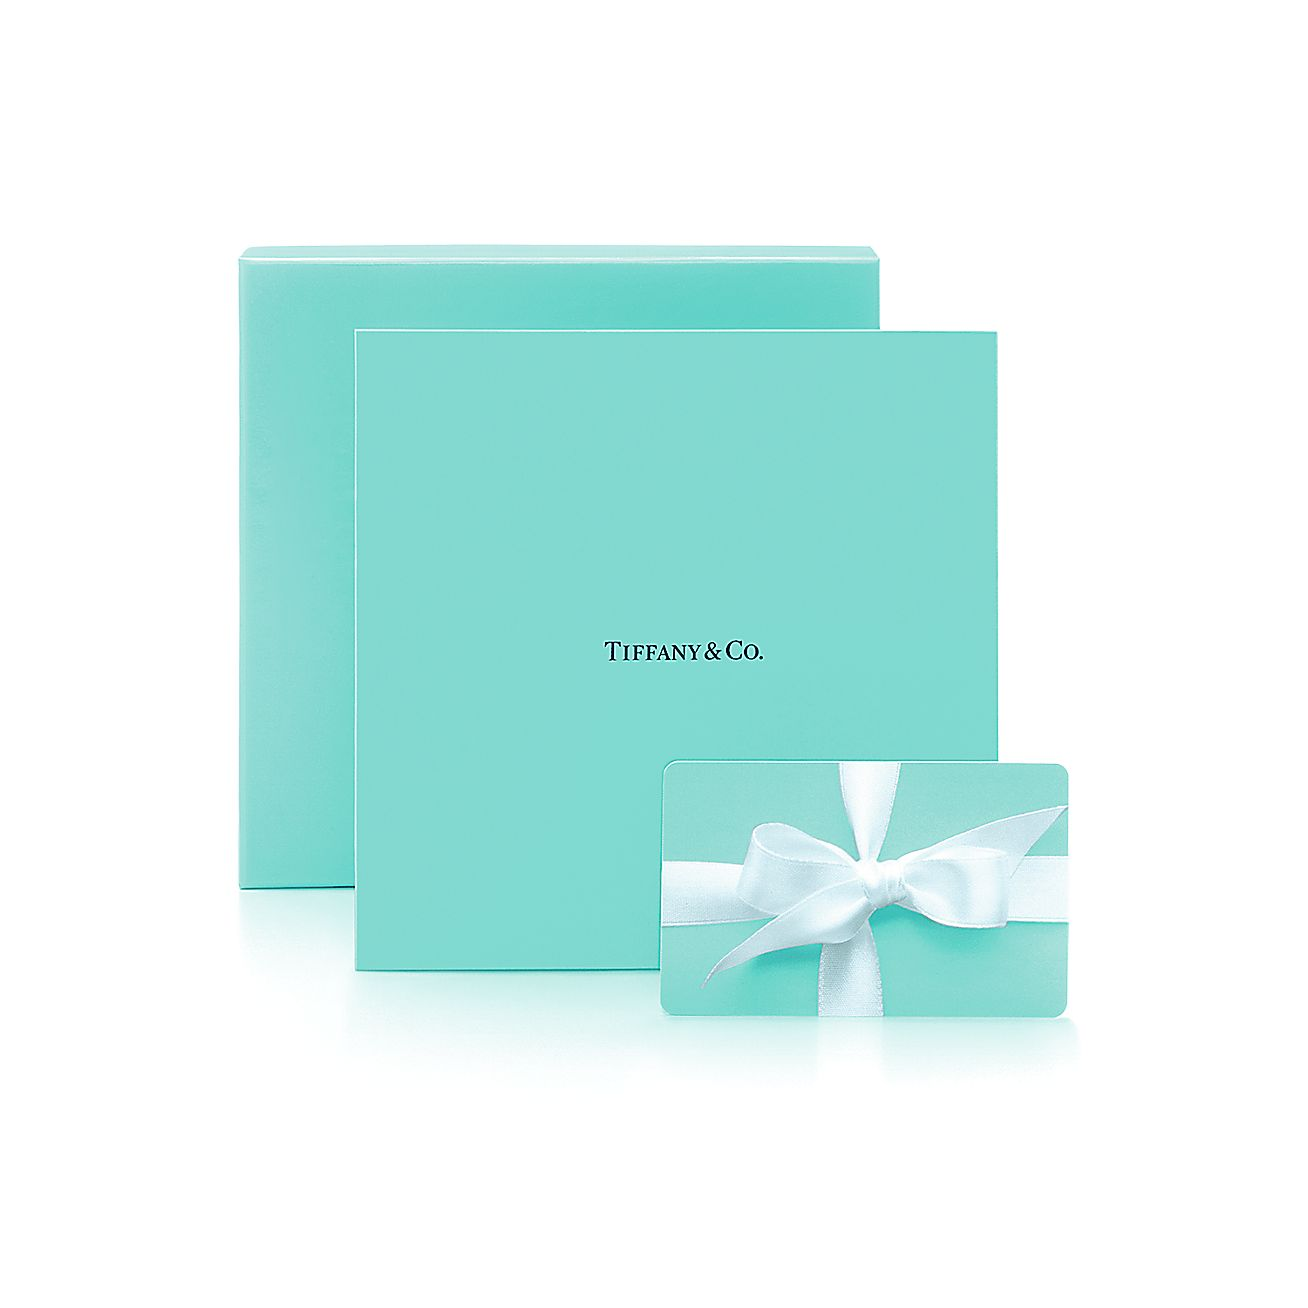 50 tiffany gift card tiffany co for Where is tiffany and co located